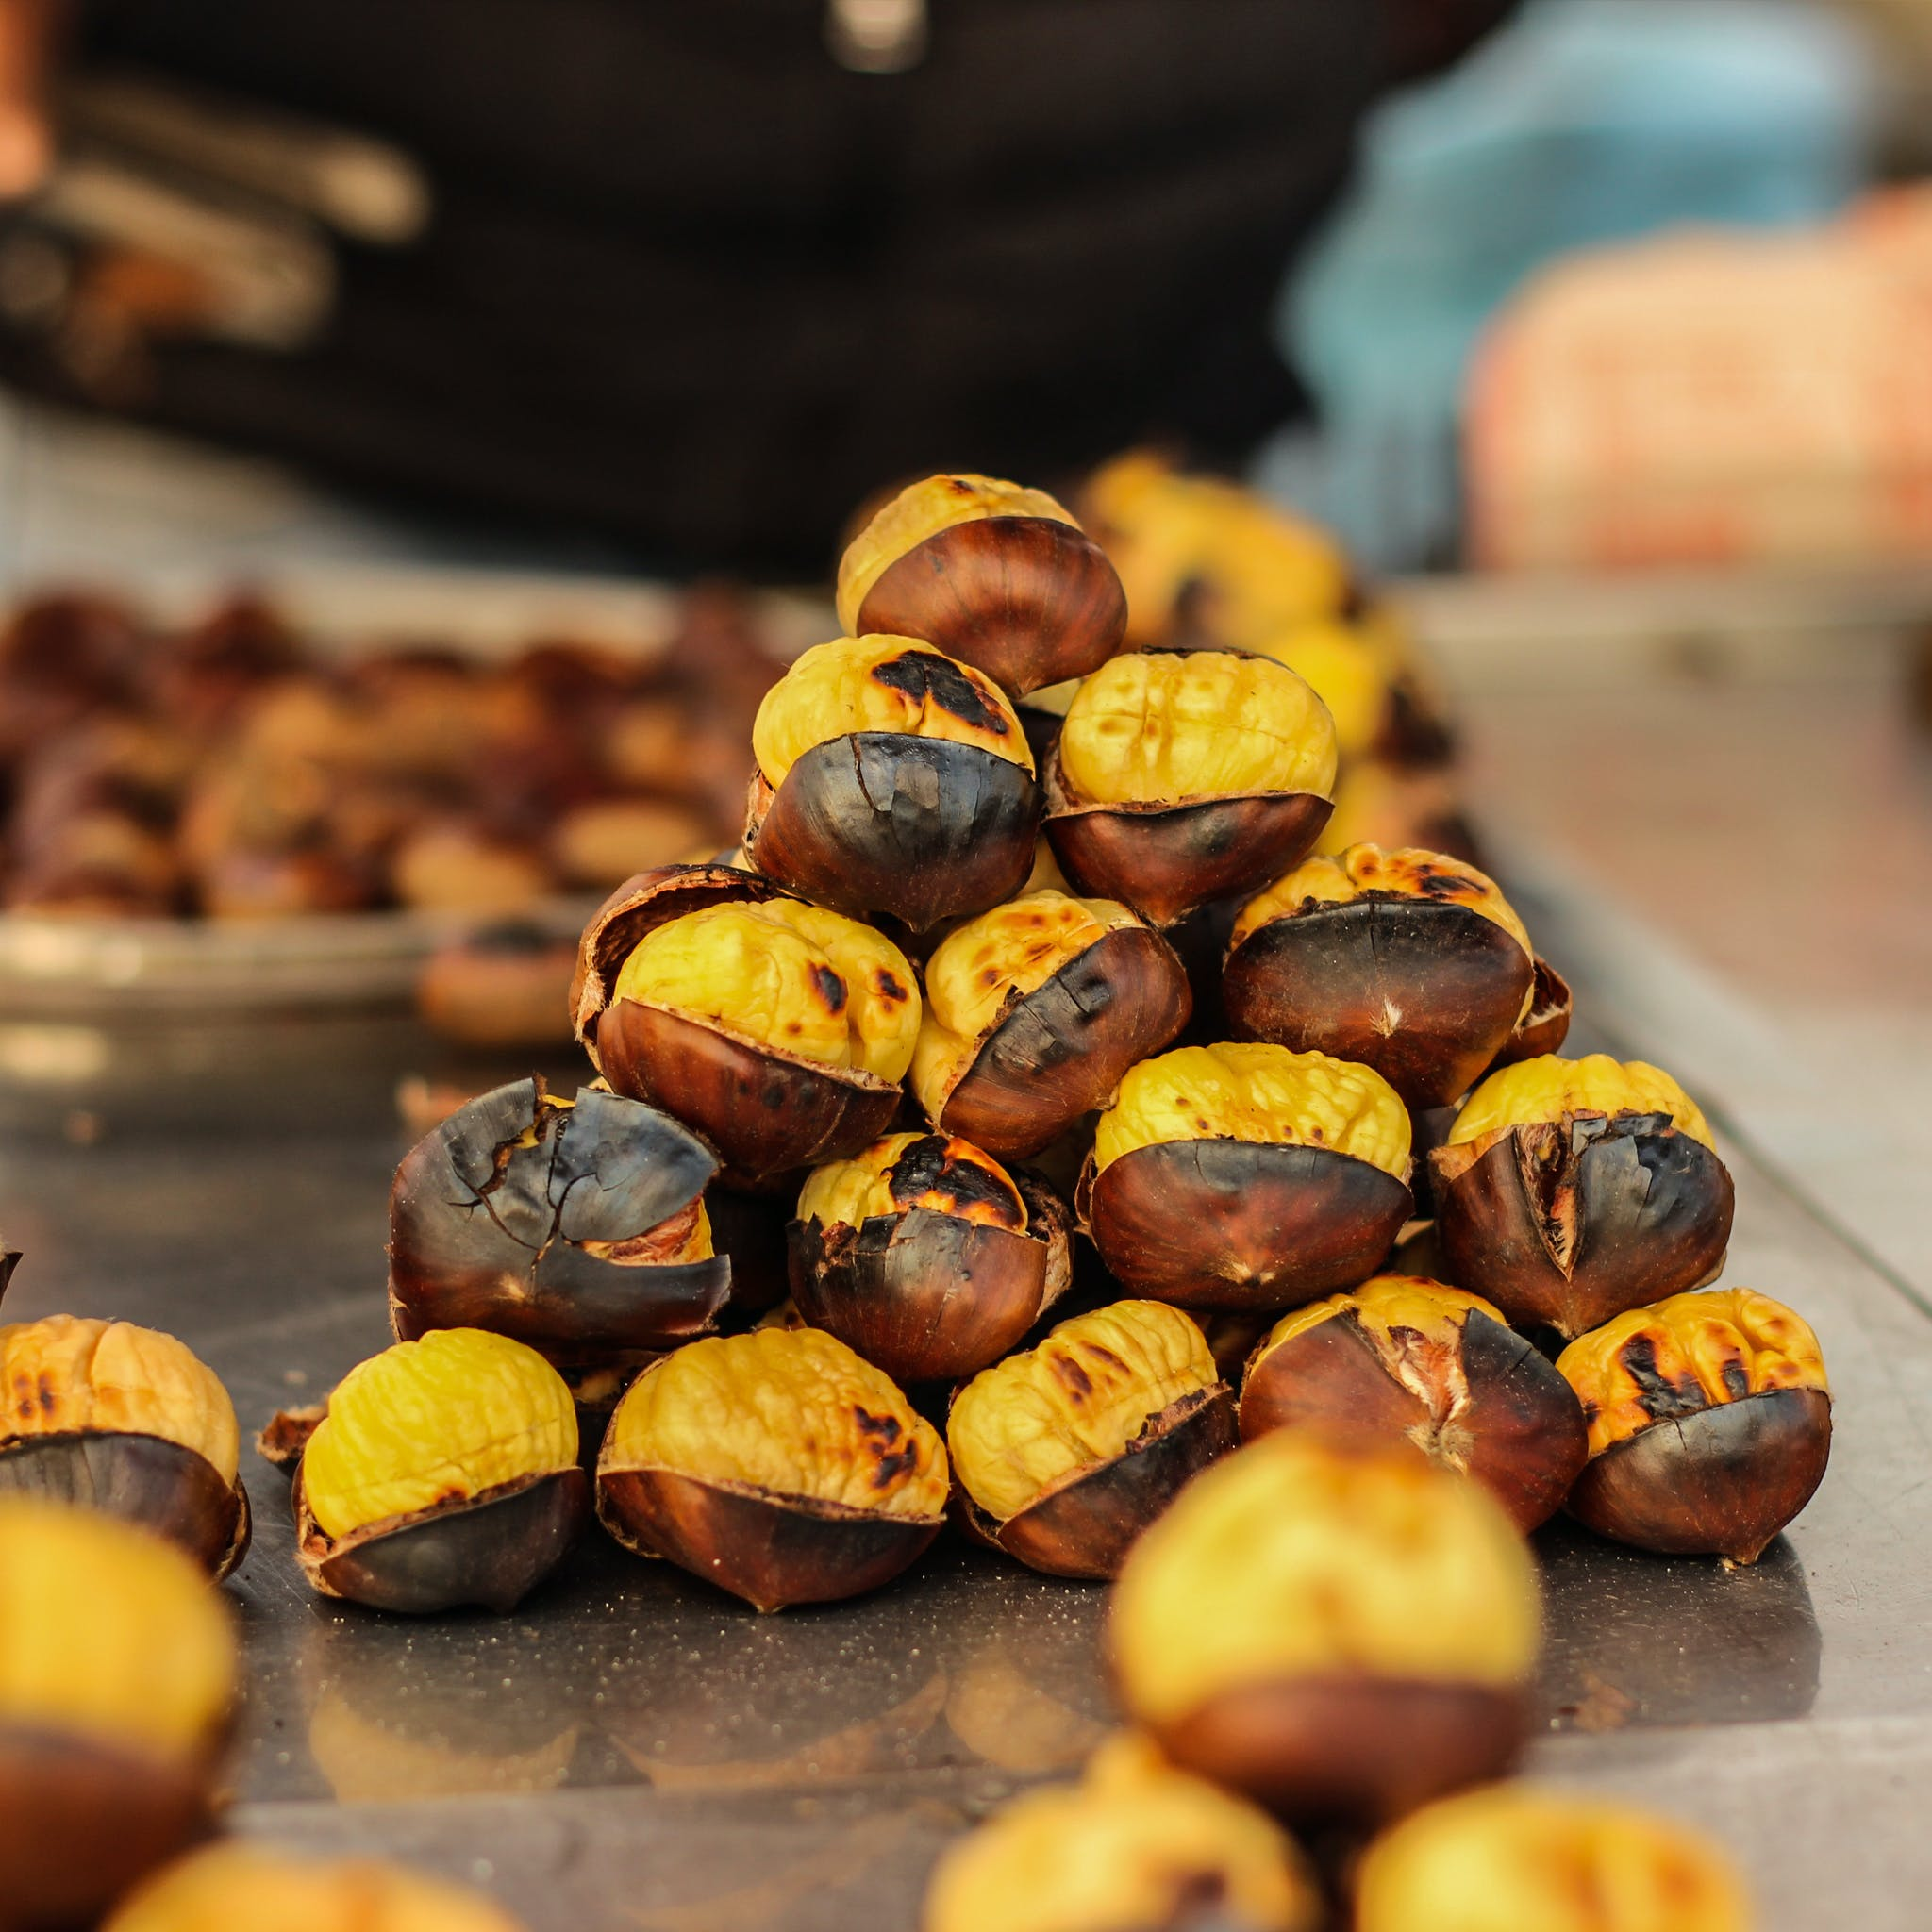 Free stock photo of baked, baked goods, chestnut, chestnuts